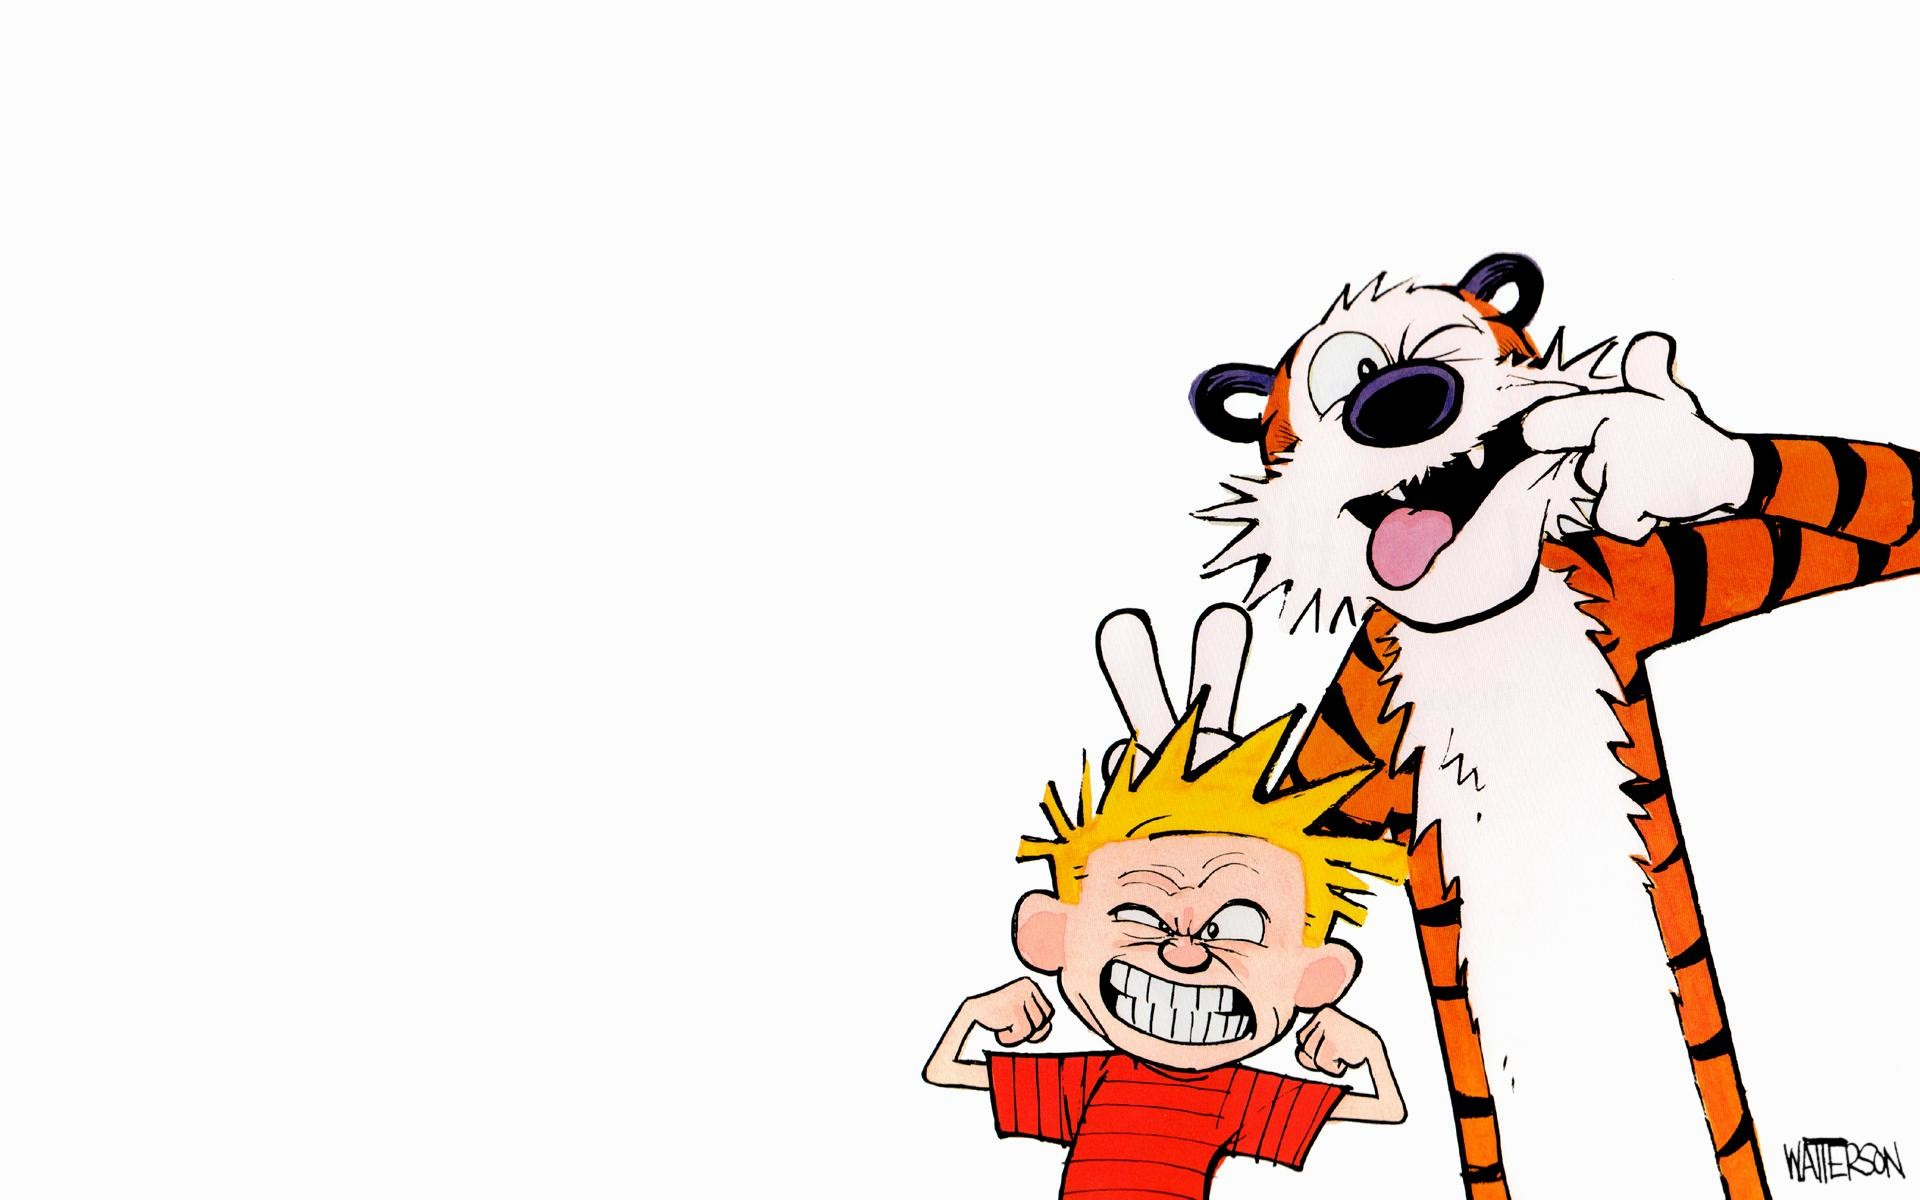 Wallpapers-calvin-and-hobbes-hd-cute